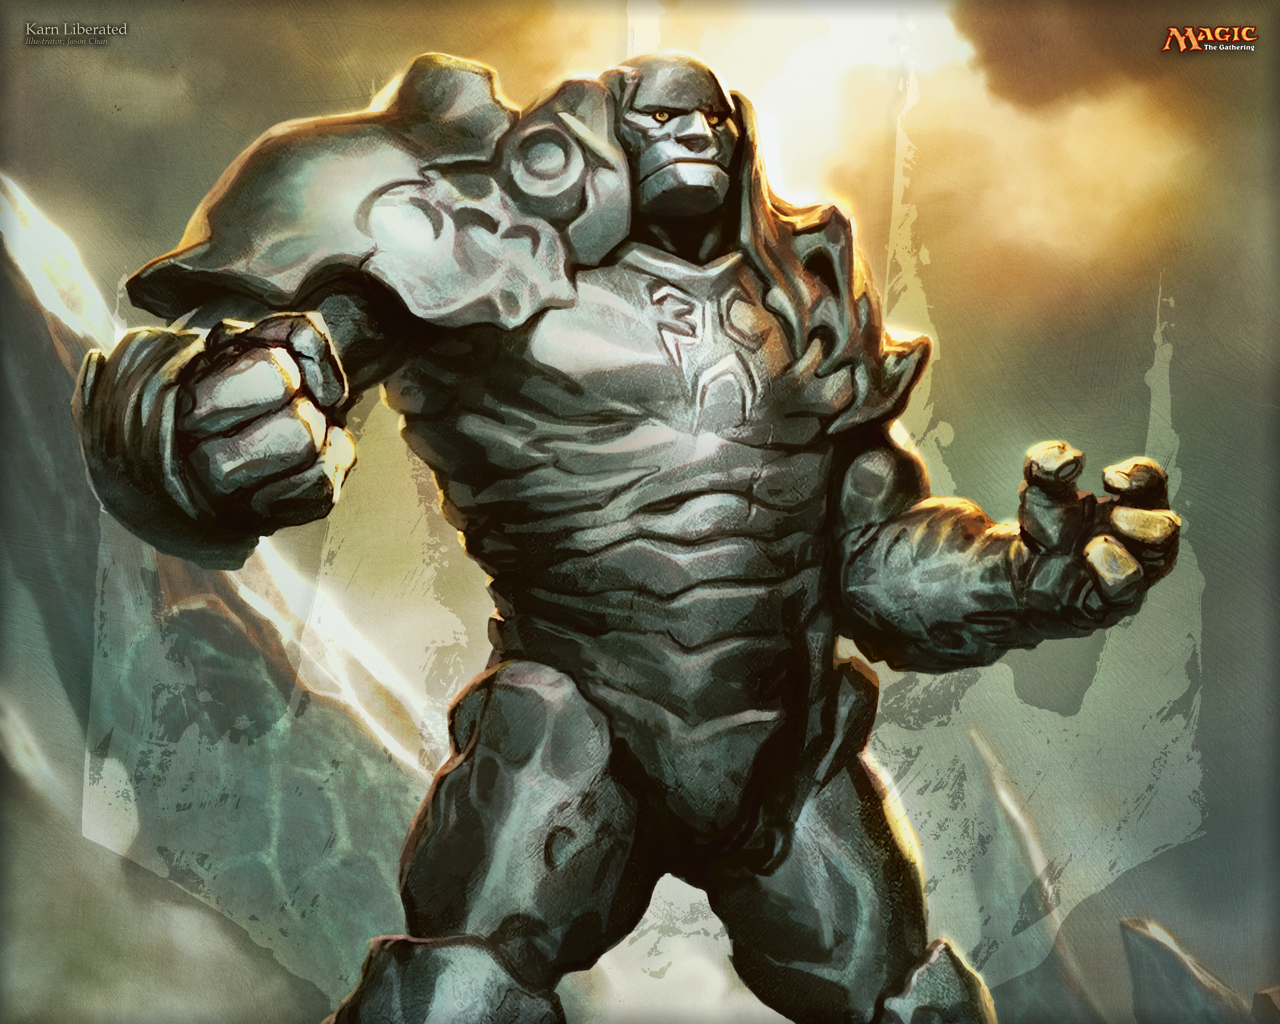 Silver Iphone Wallpaper Wallpaper Of The Week Karn Liberated Magic The Gathering